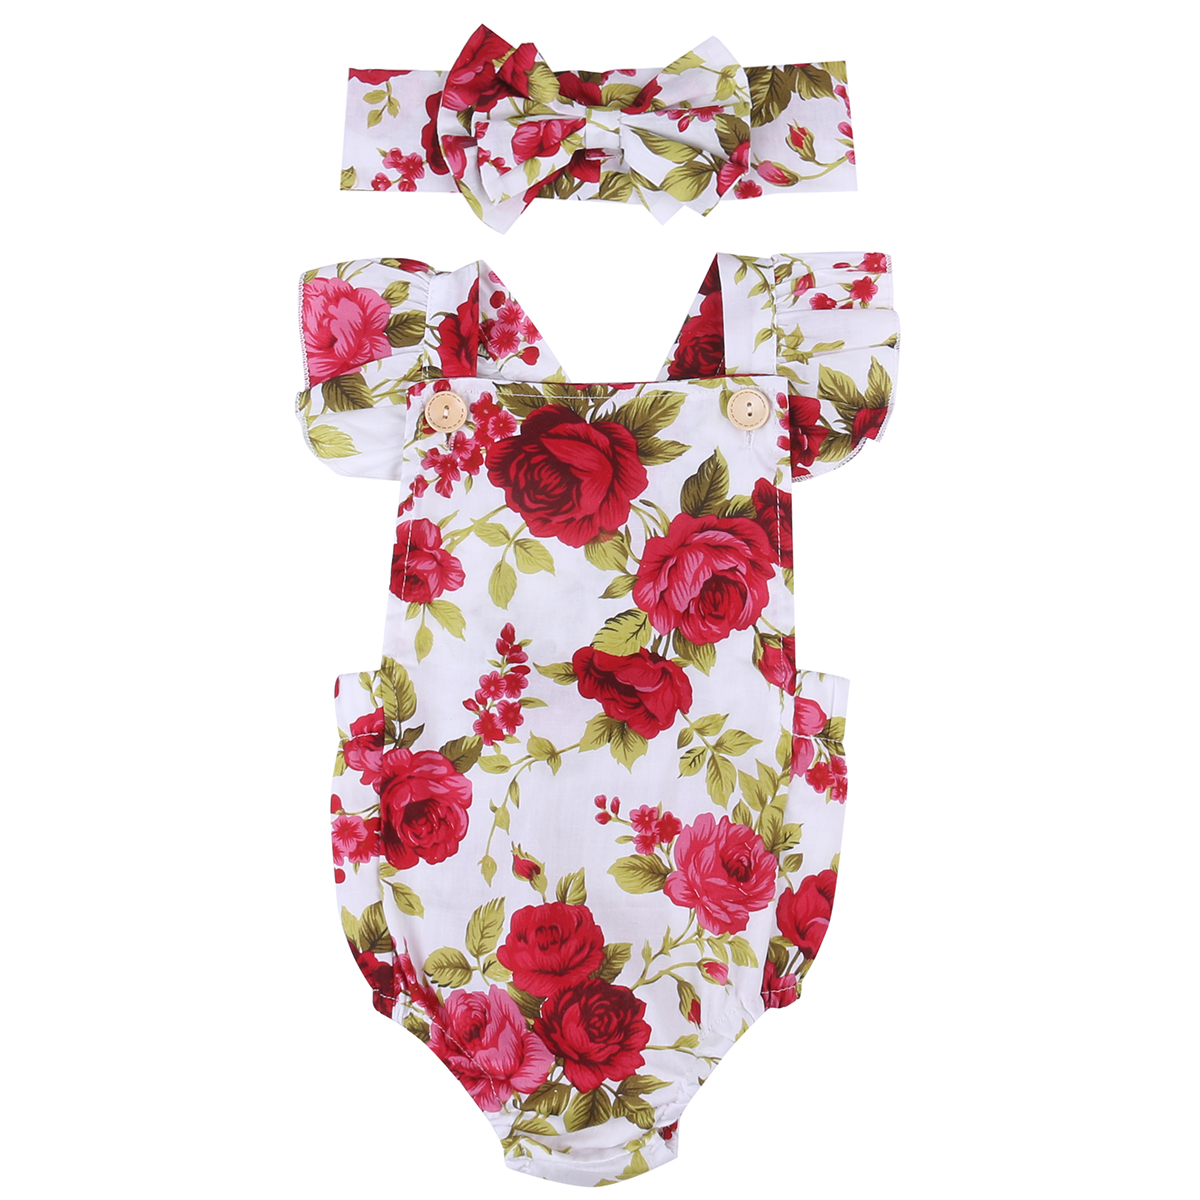 2017 Floral Baby Romper Newborn Baby Girl Clothes Ruffles Sleeve Bodysuit +Headband 2pcs Outfit Bebek Giyim Sunsuit 0-24M pink newborn infant baby girls clothes short sleeve bodysuit striped leg warmers headband 3pcs outfit bebek clothing set 0 18m